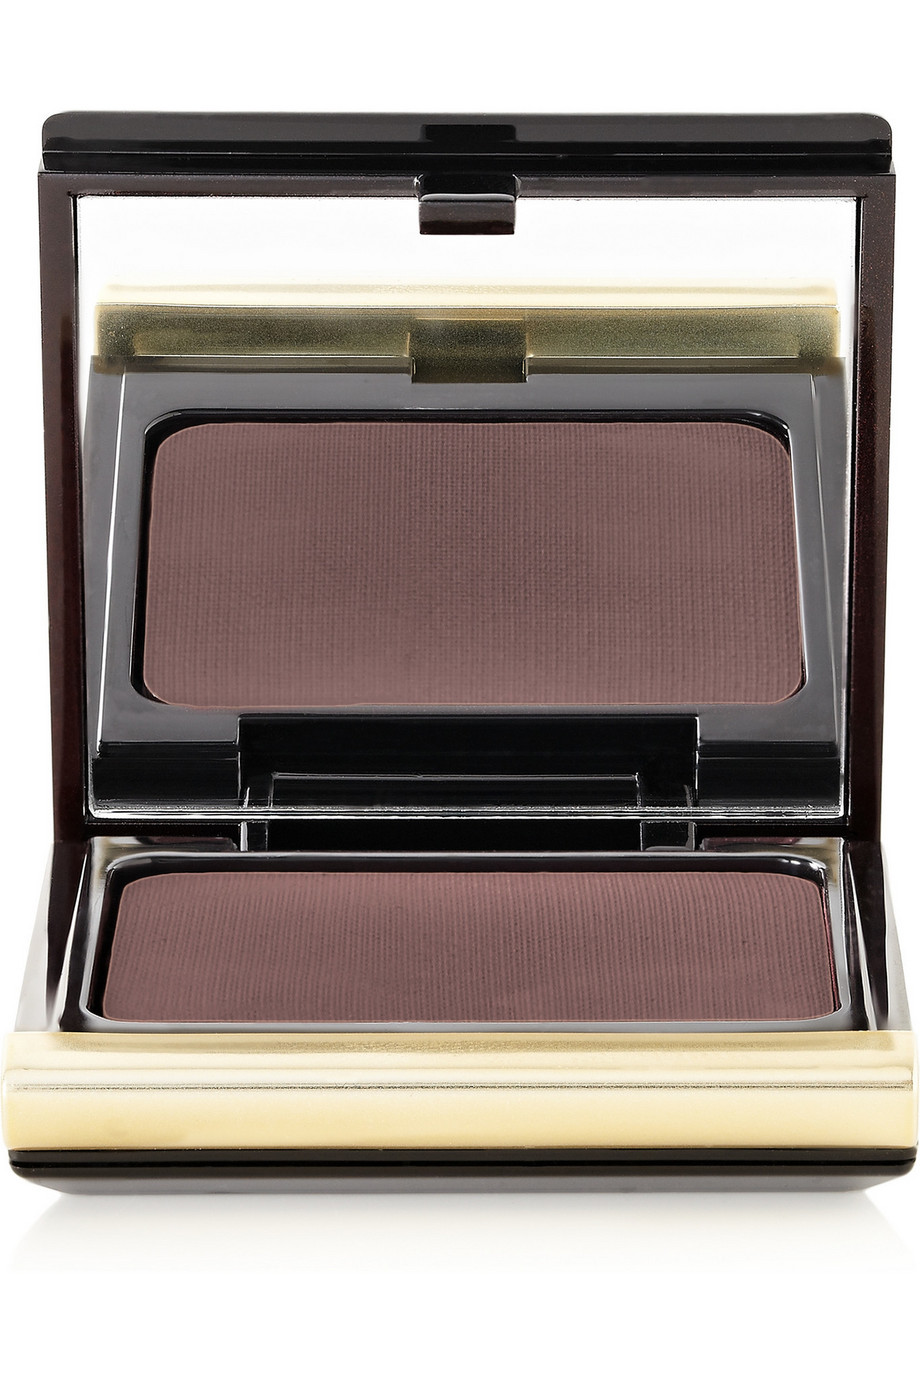 The Matte Eyeshadow Single - No. 108, by Kevyn Aucoin